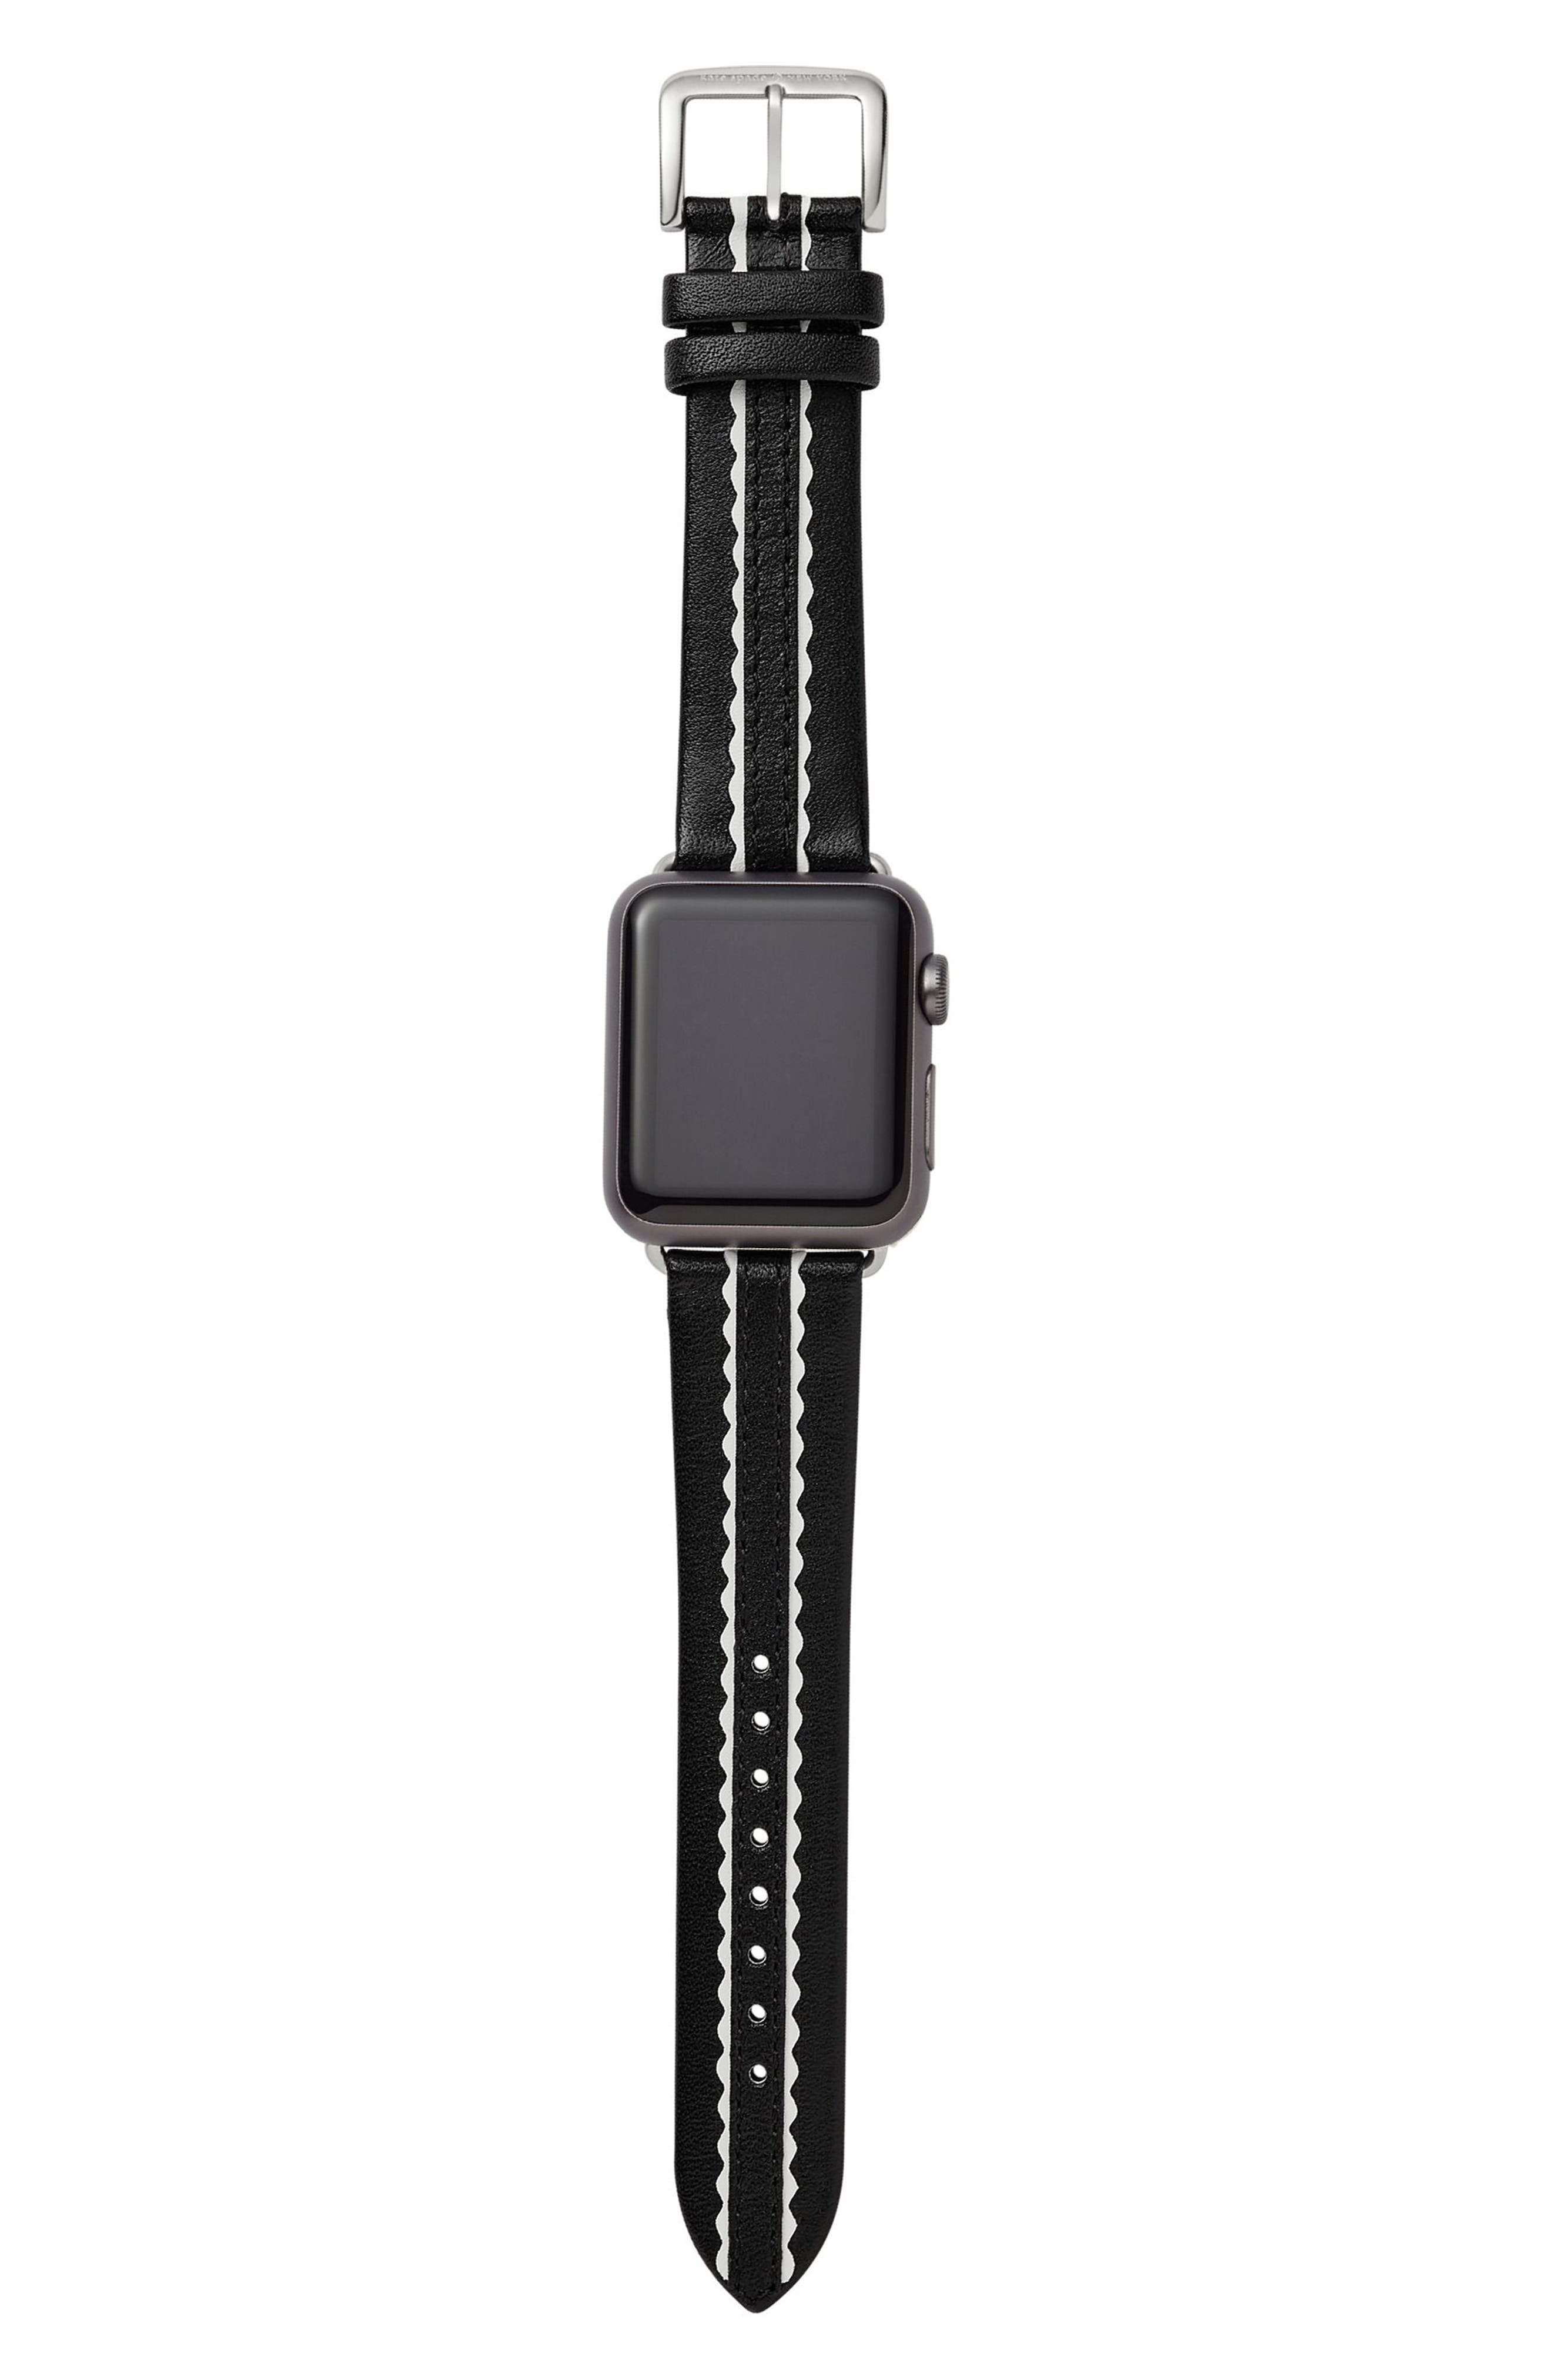 KATE SPADE NEW YORK, Apple Watch strap, 38mm, Alternate thumbnail 2, color, NUDE/ WHITE